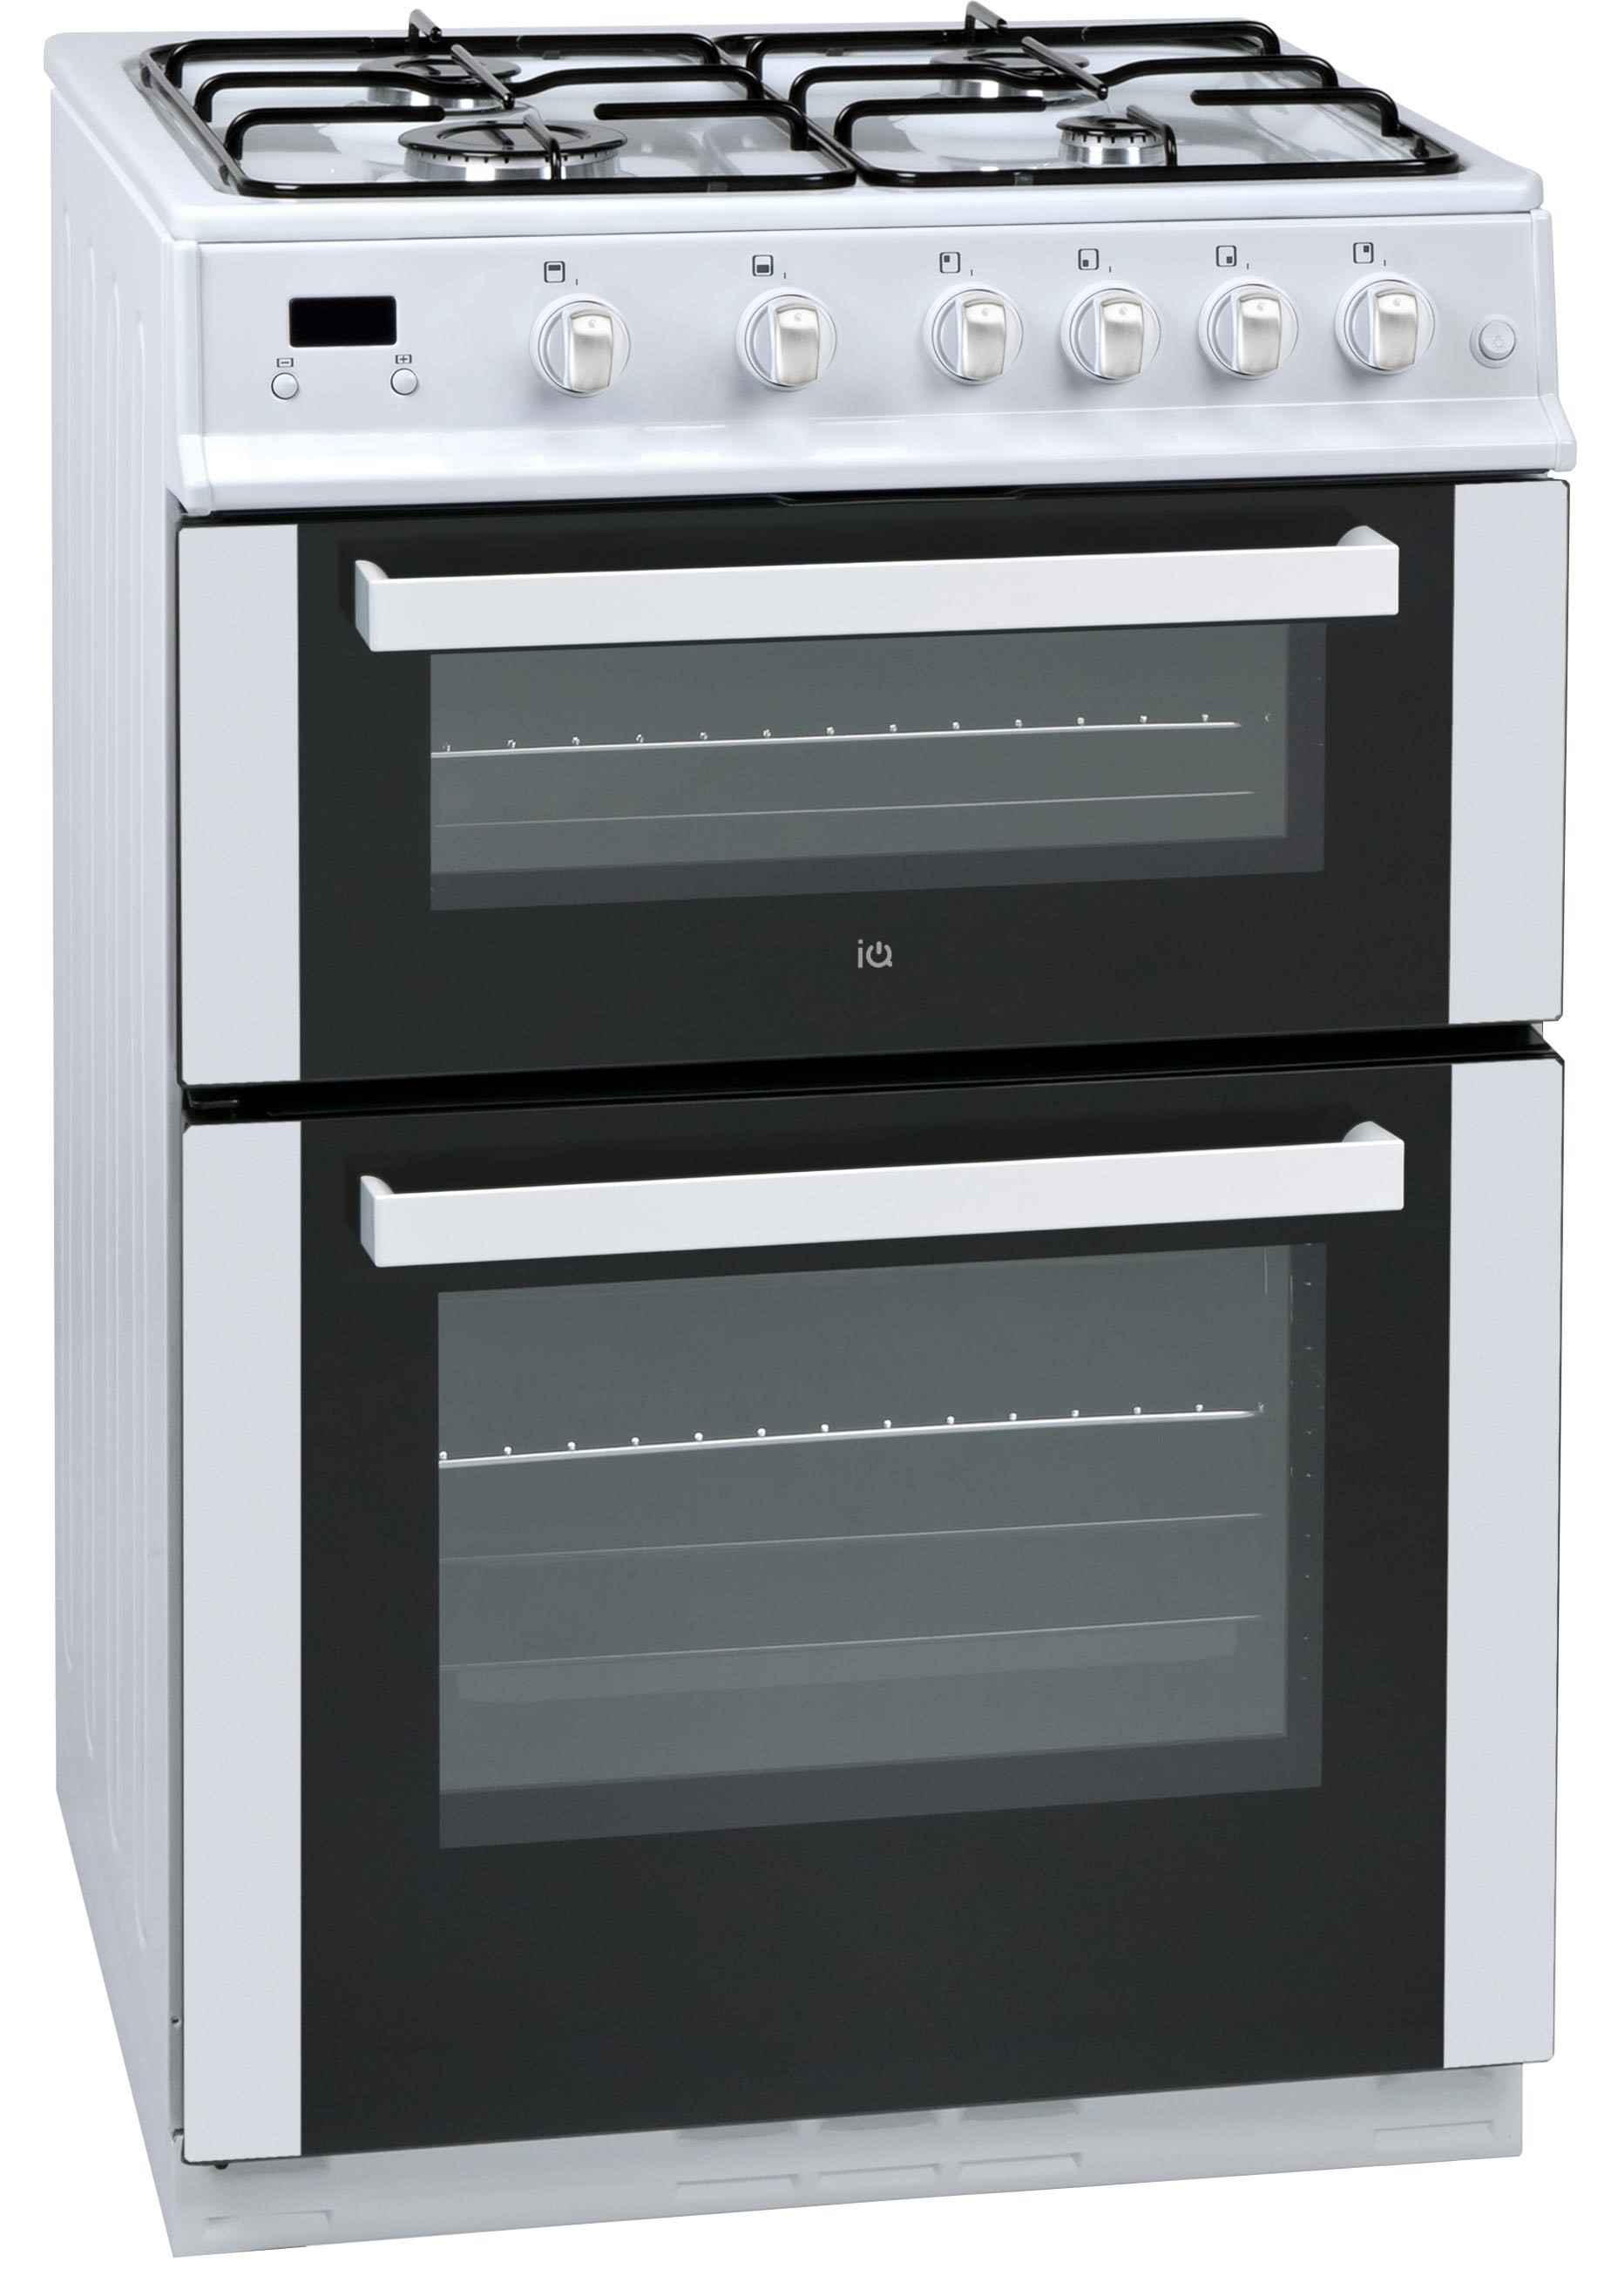 IQGC3W60 double oven gas cooker